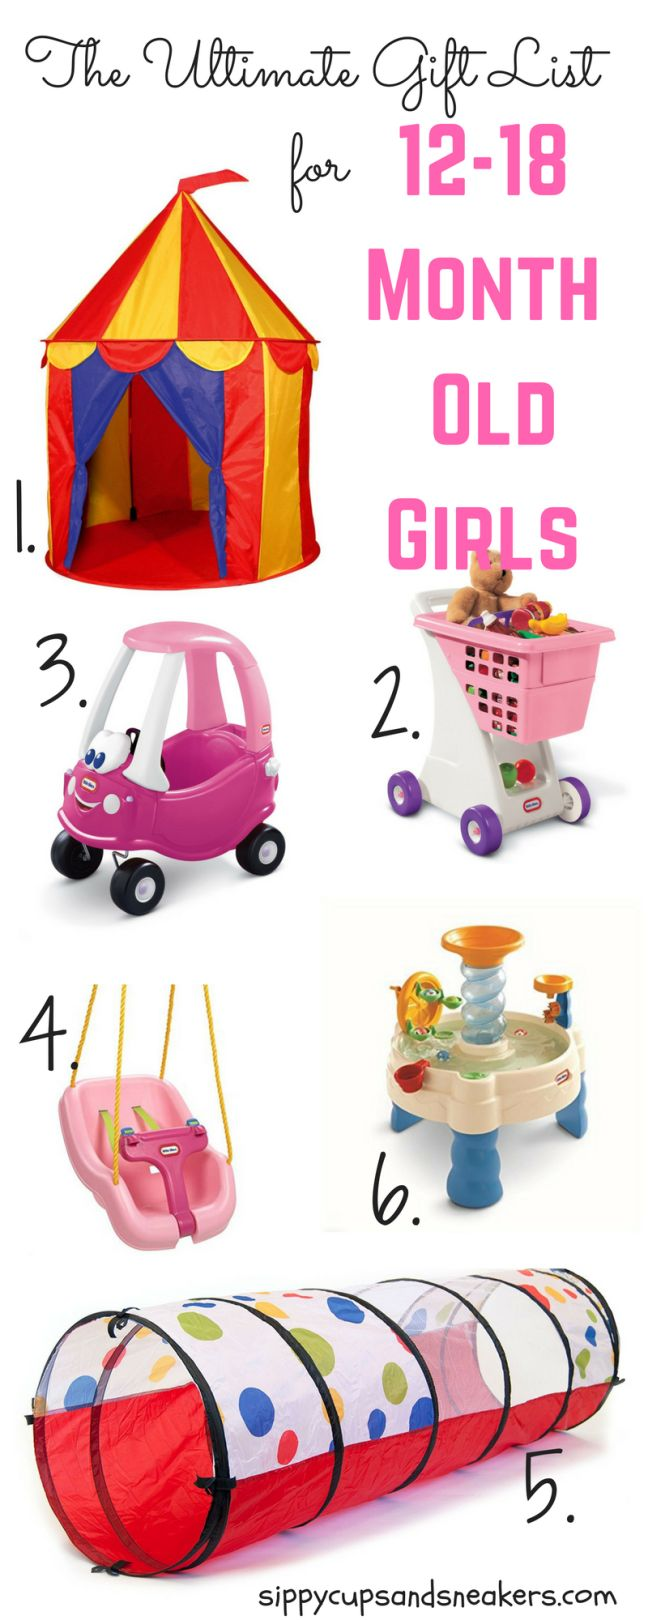 Toys For 12 18 Months Old : The ultimate gift list for month old girls hayden